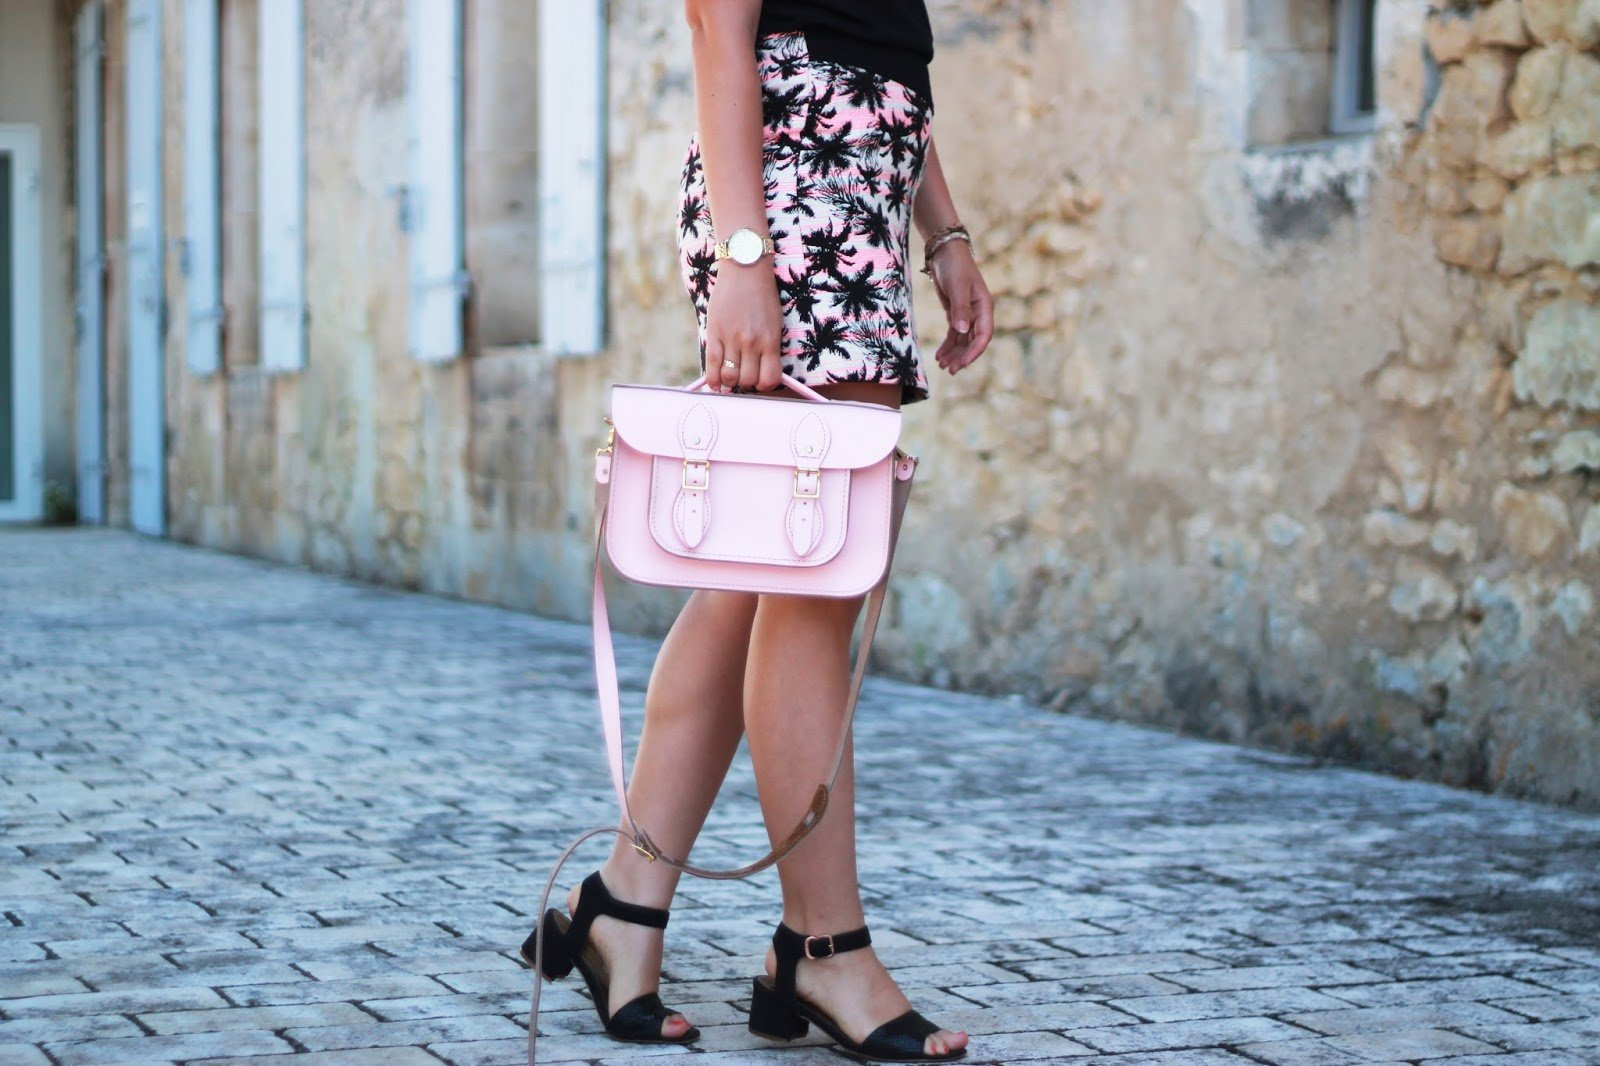 The leather satchel pink